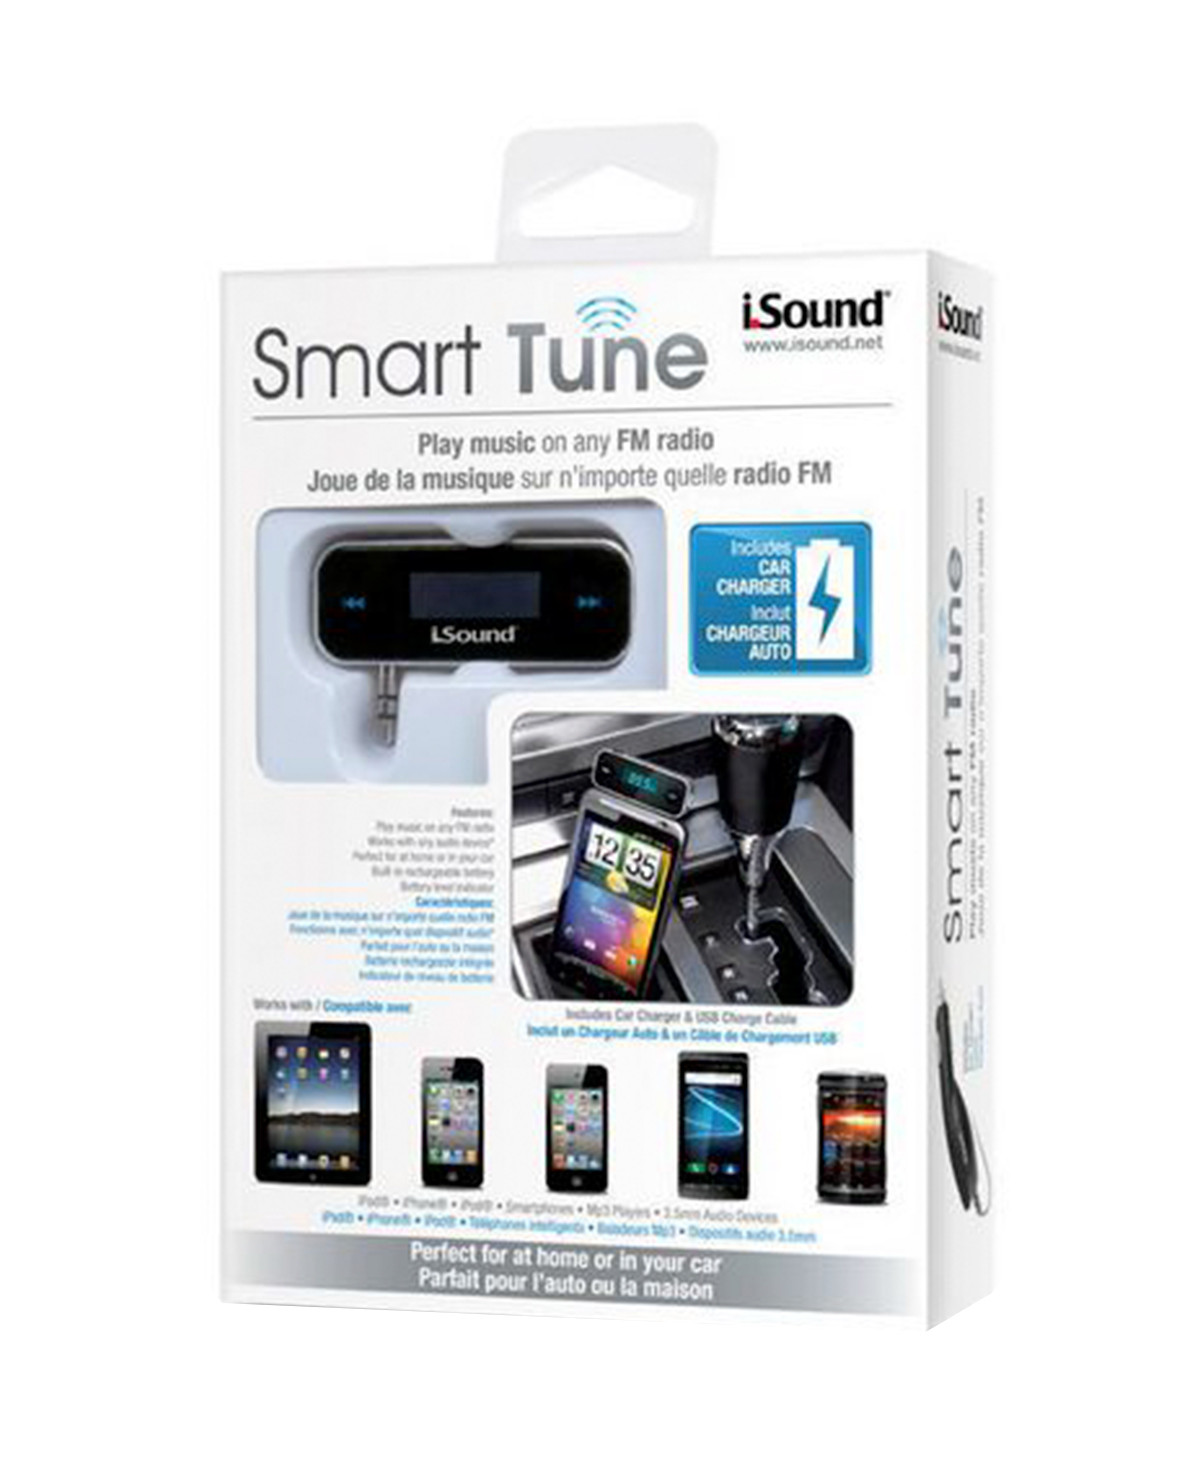 isound smart tune instructions